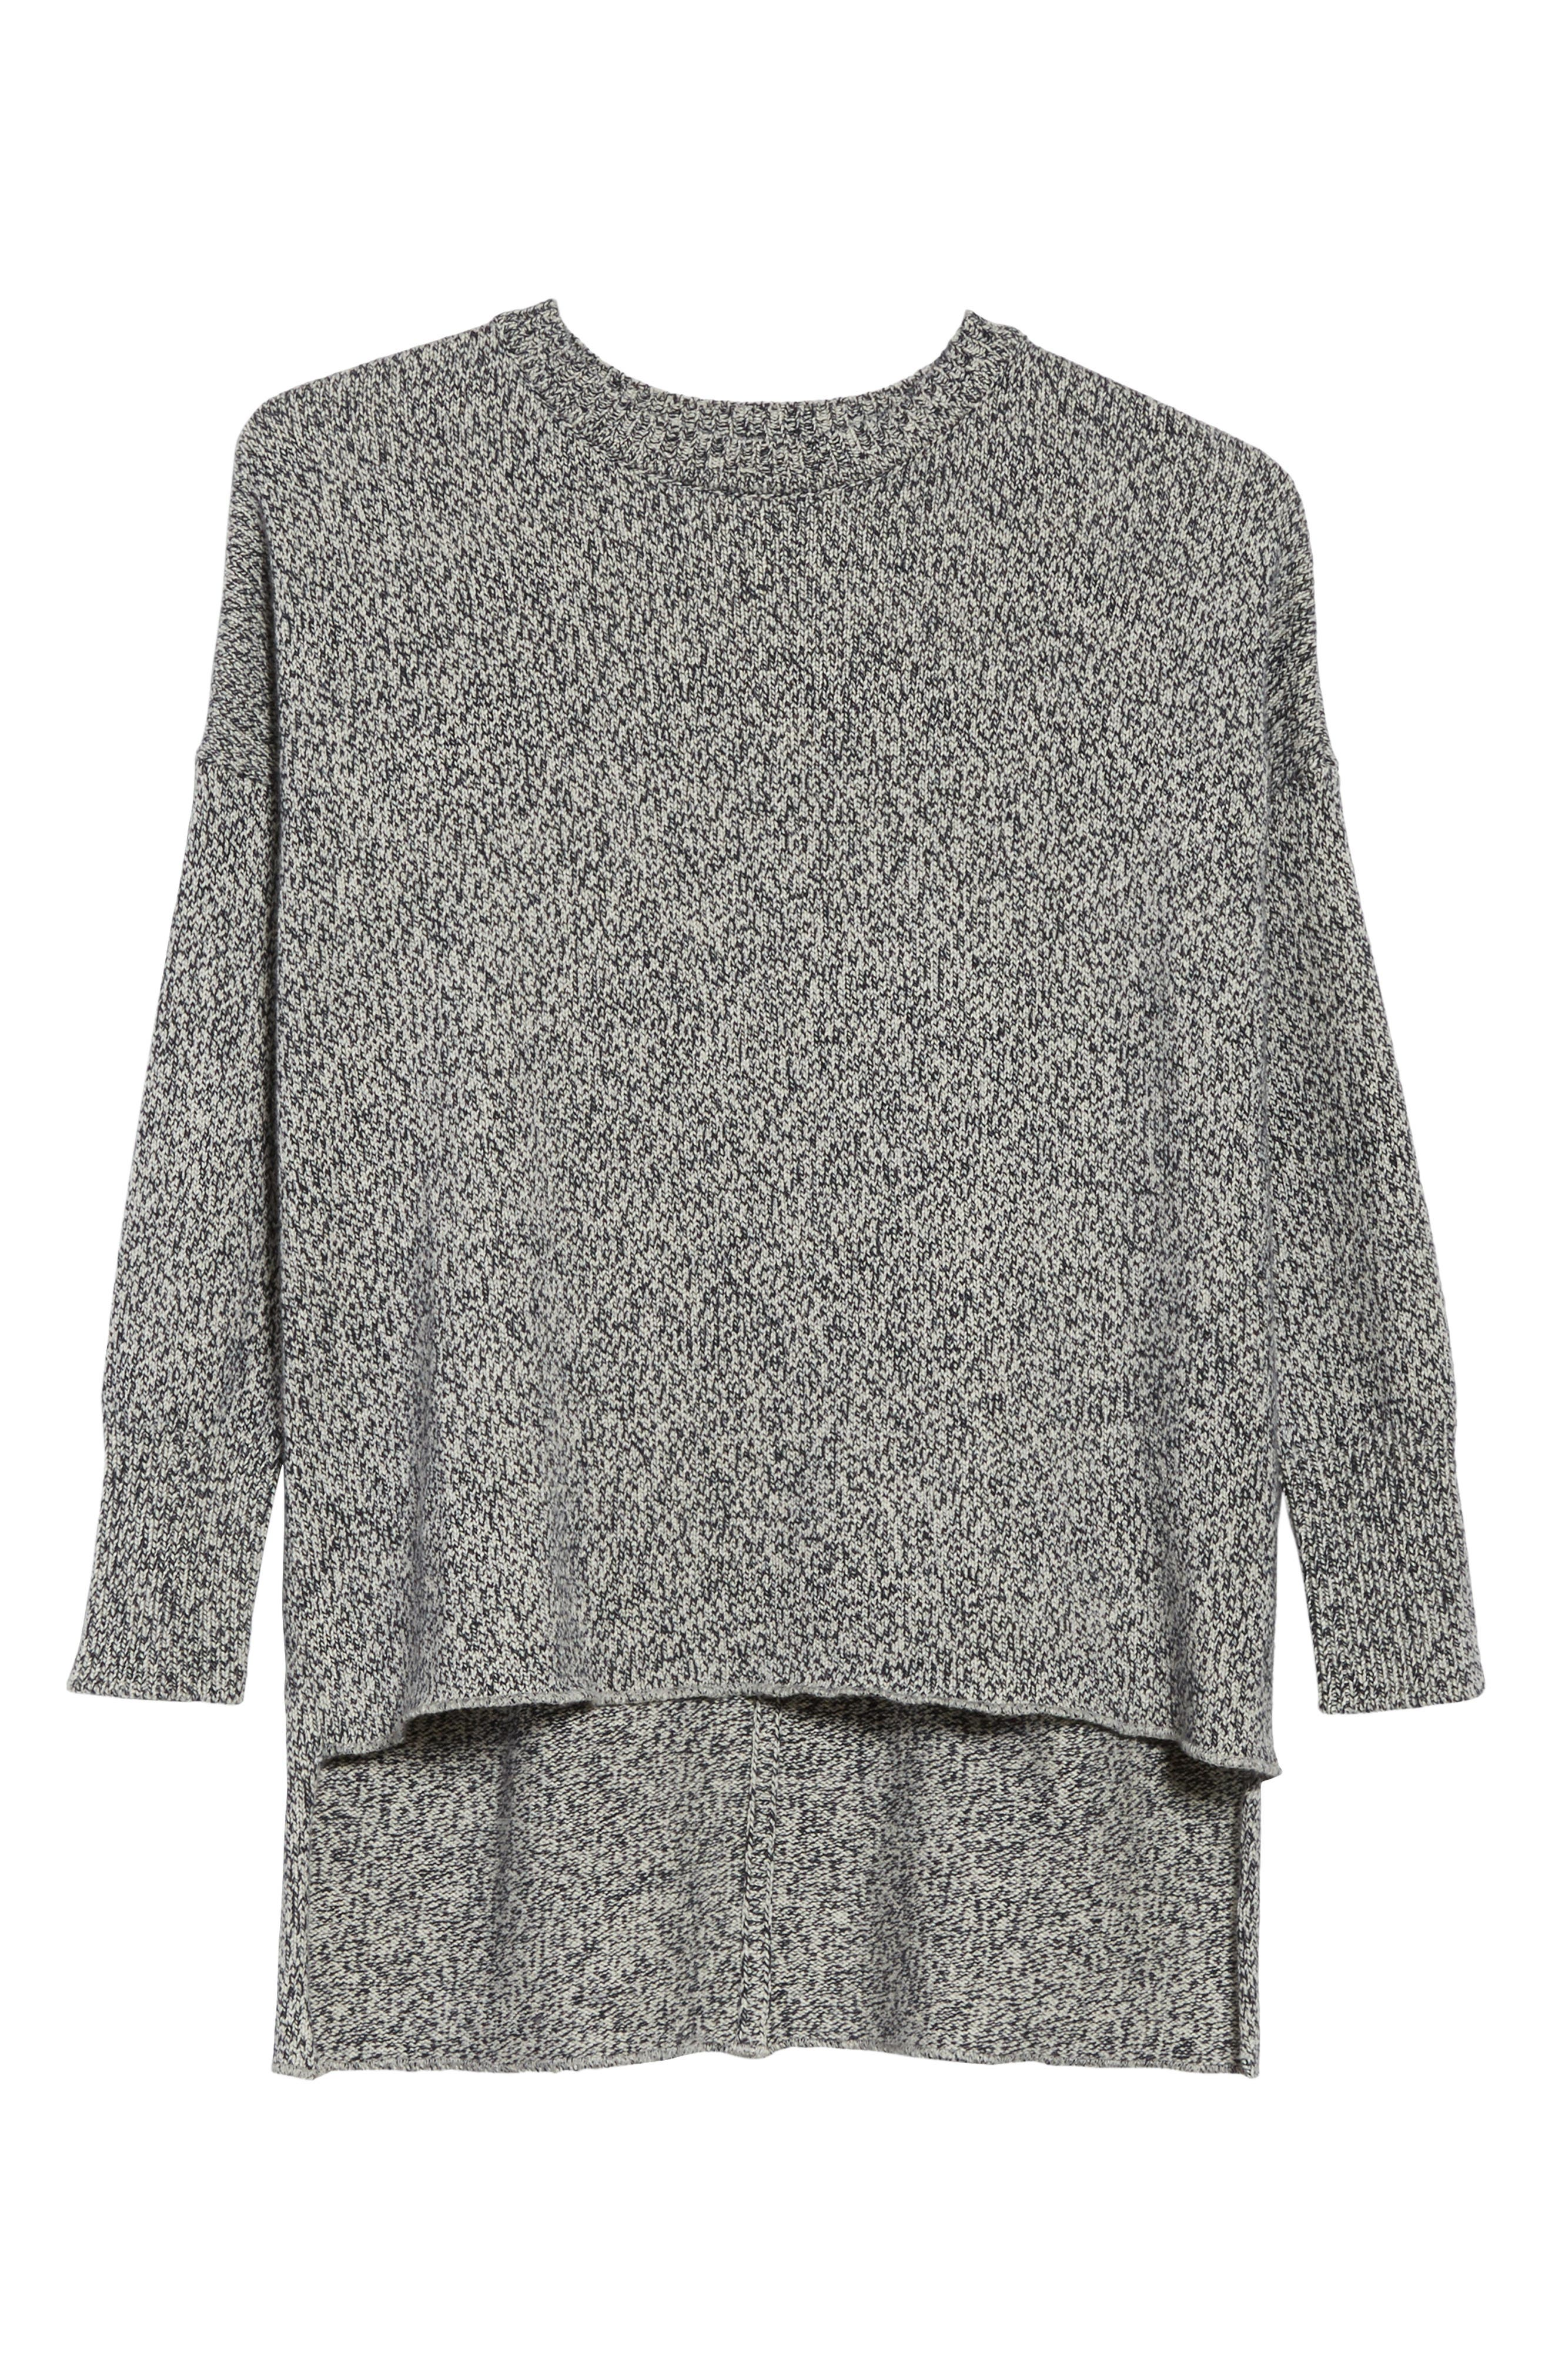 Marled Cotton, Cashmere & Silk Sweater,                             Alternate thumbnail 6, color,                             020